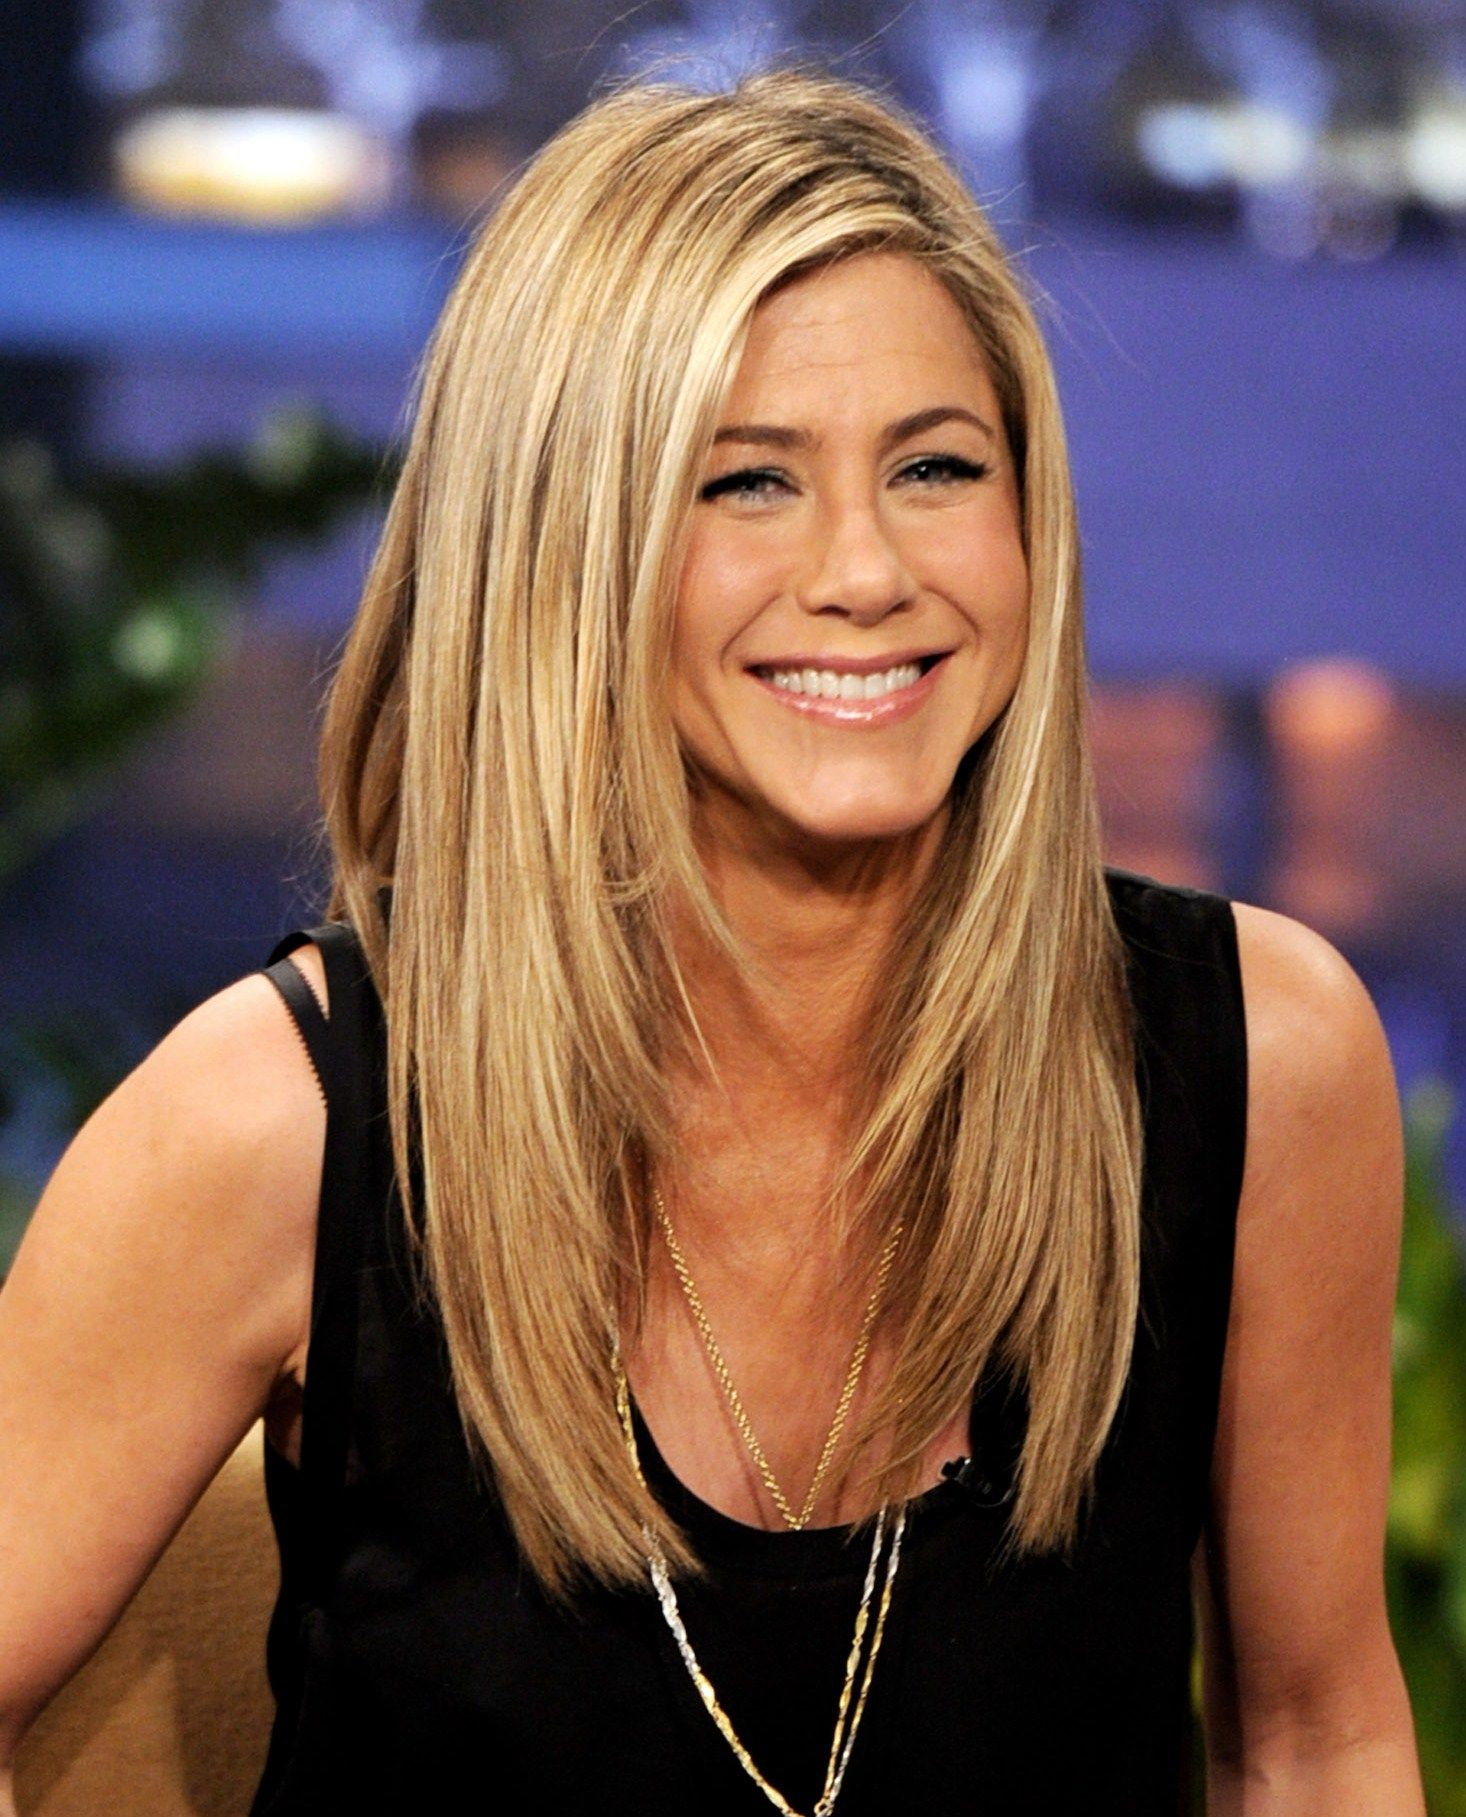 jennifer aniston haare stilfrage pinterest haarschnitt lange haare lange haare und frisuren. Black Bedroom Furniture Sets. Home Design Ideas